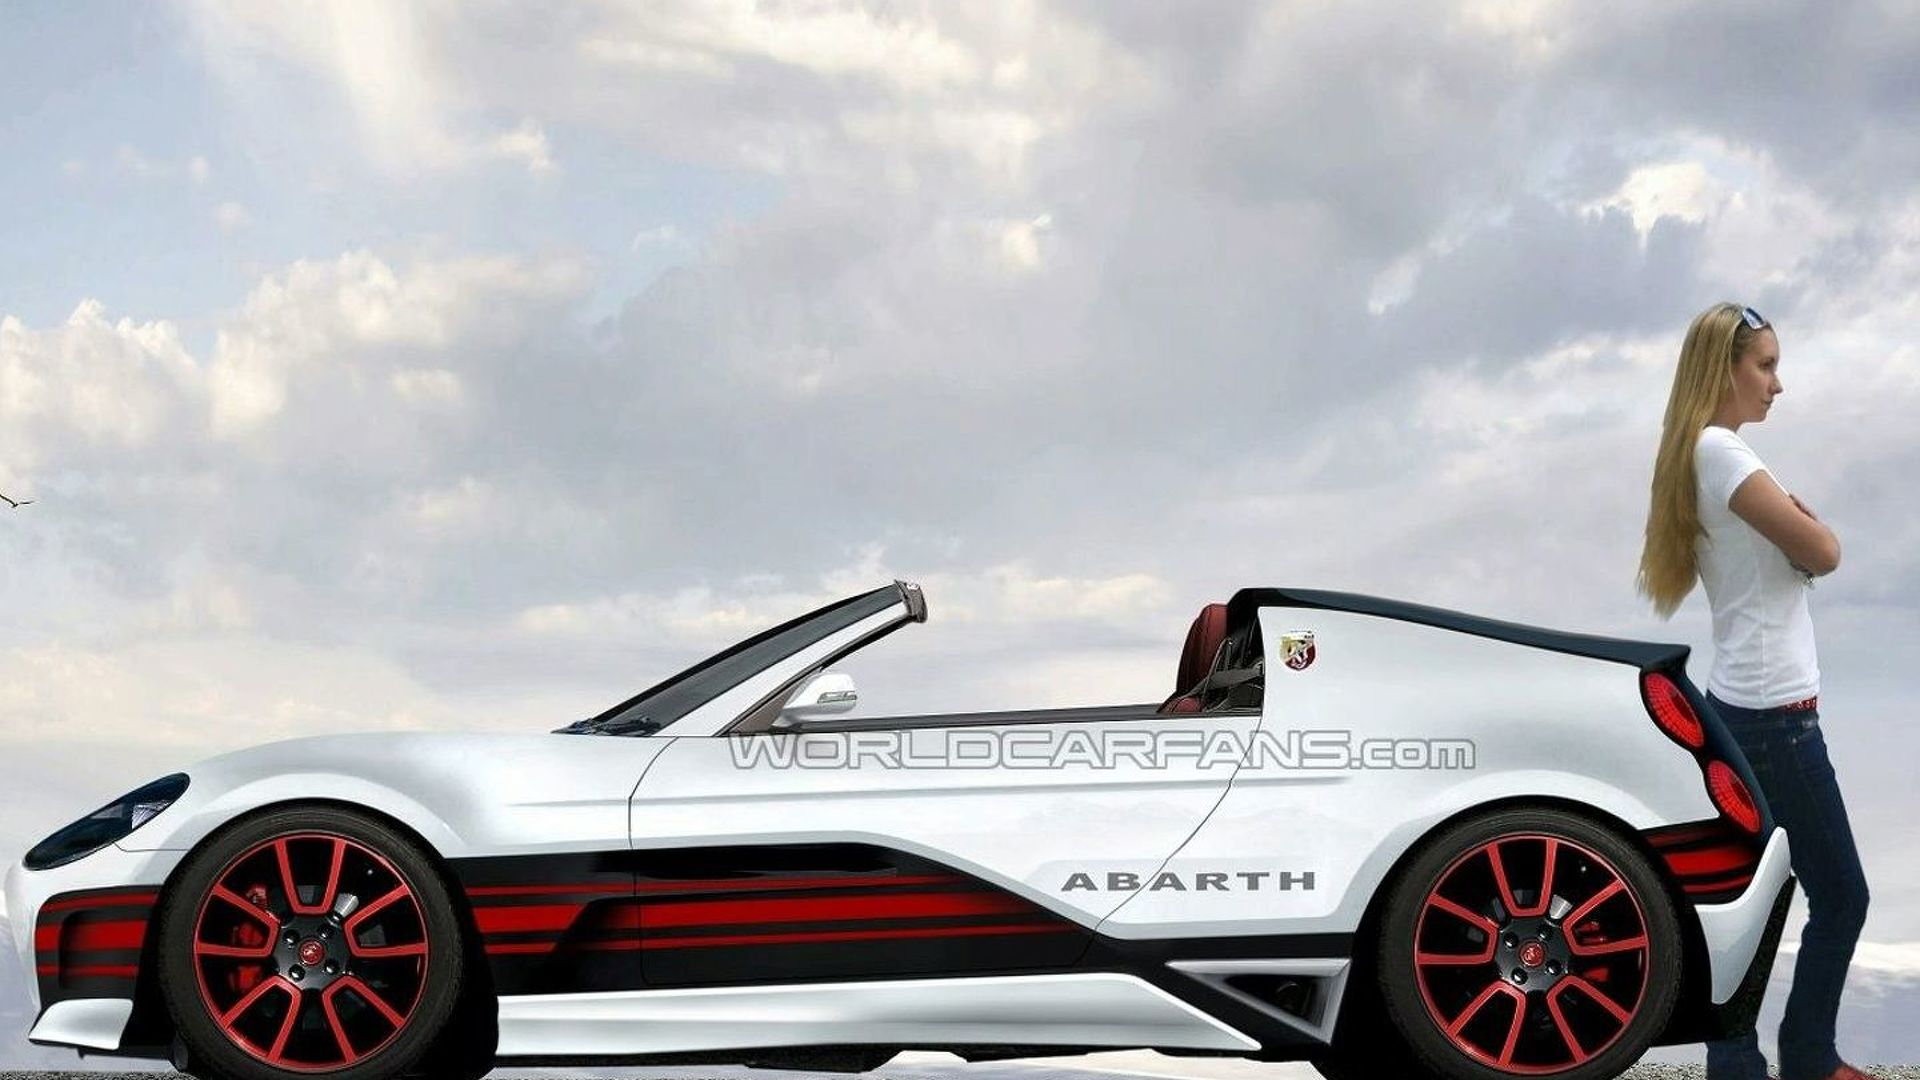 KTM X-Bow to underpin Abarth Coupe - report